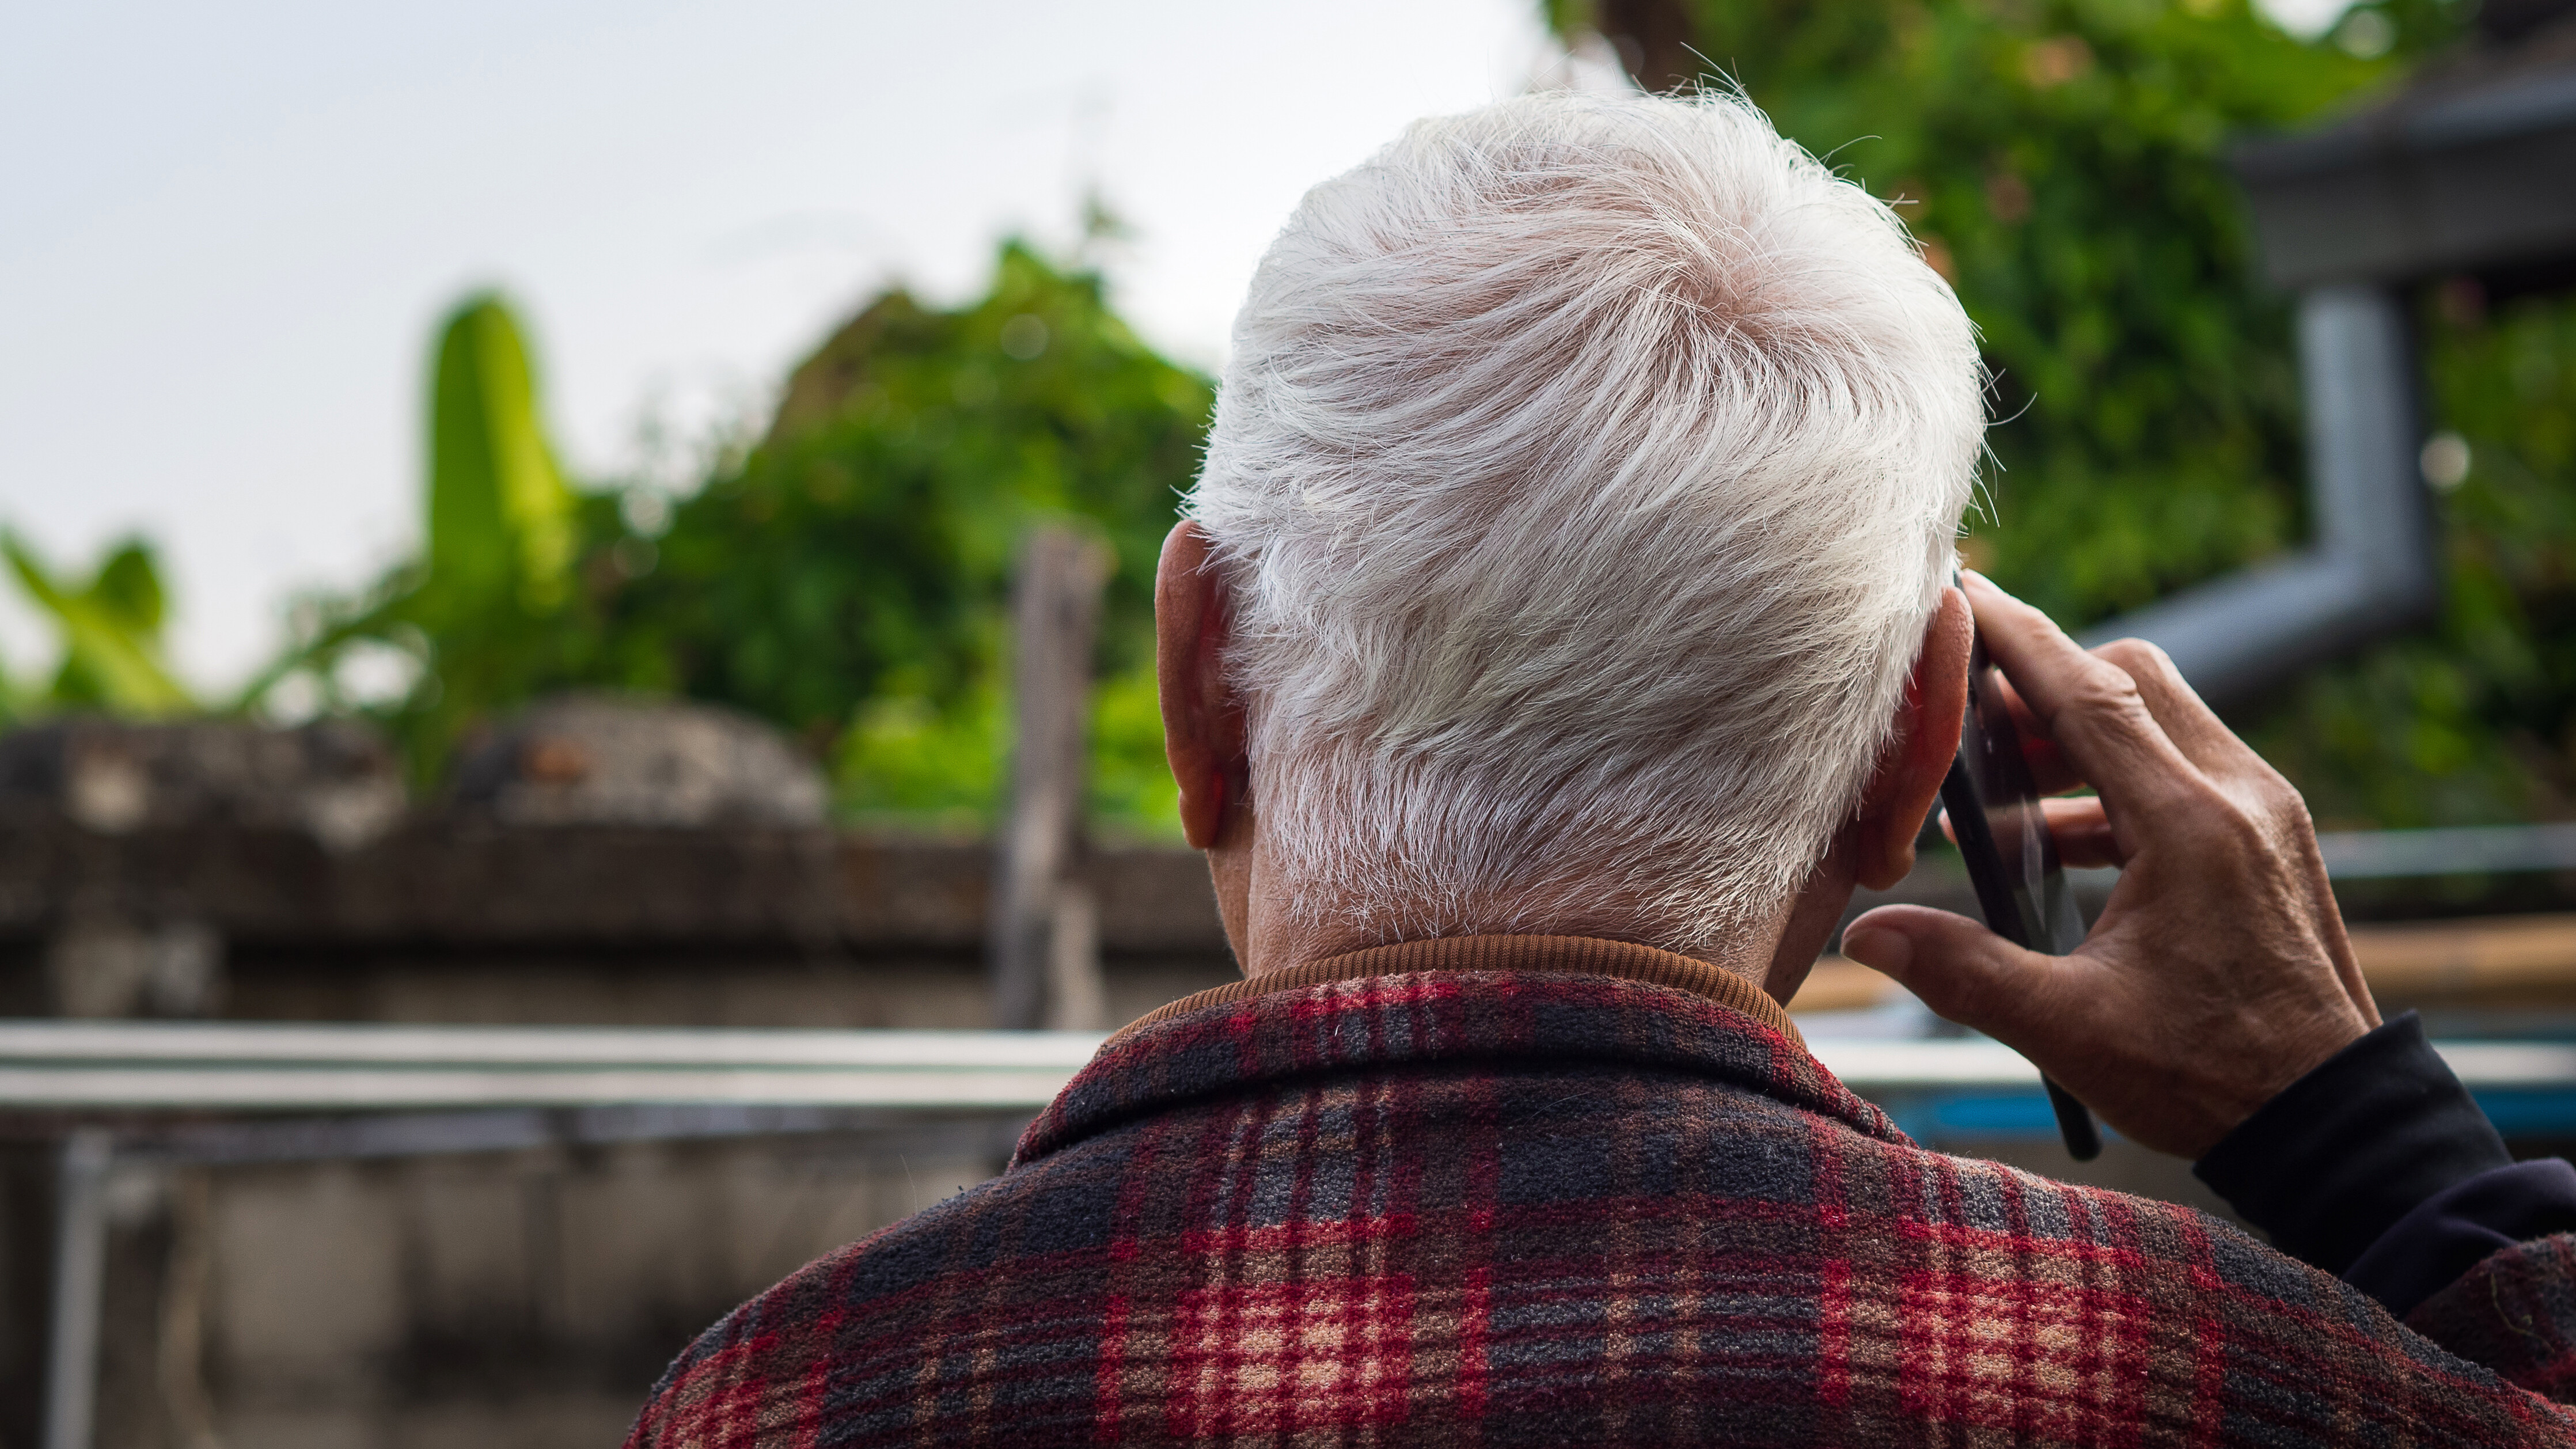 Virtual contact was worse for older people during the pandemic than no contact, study finds